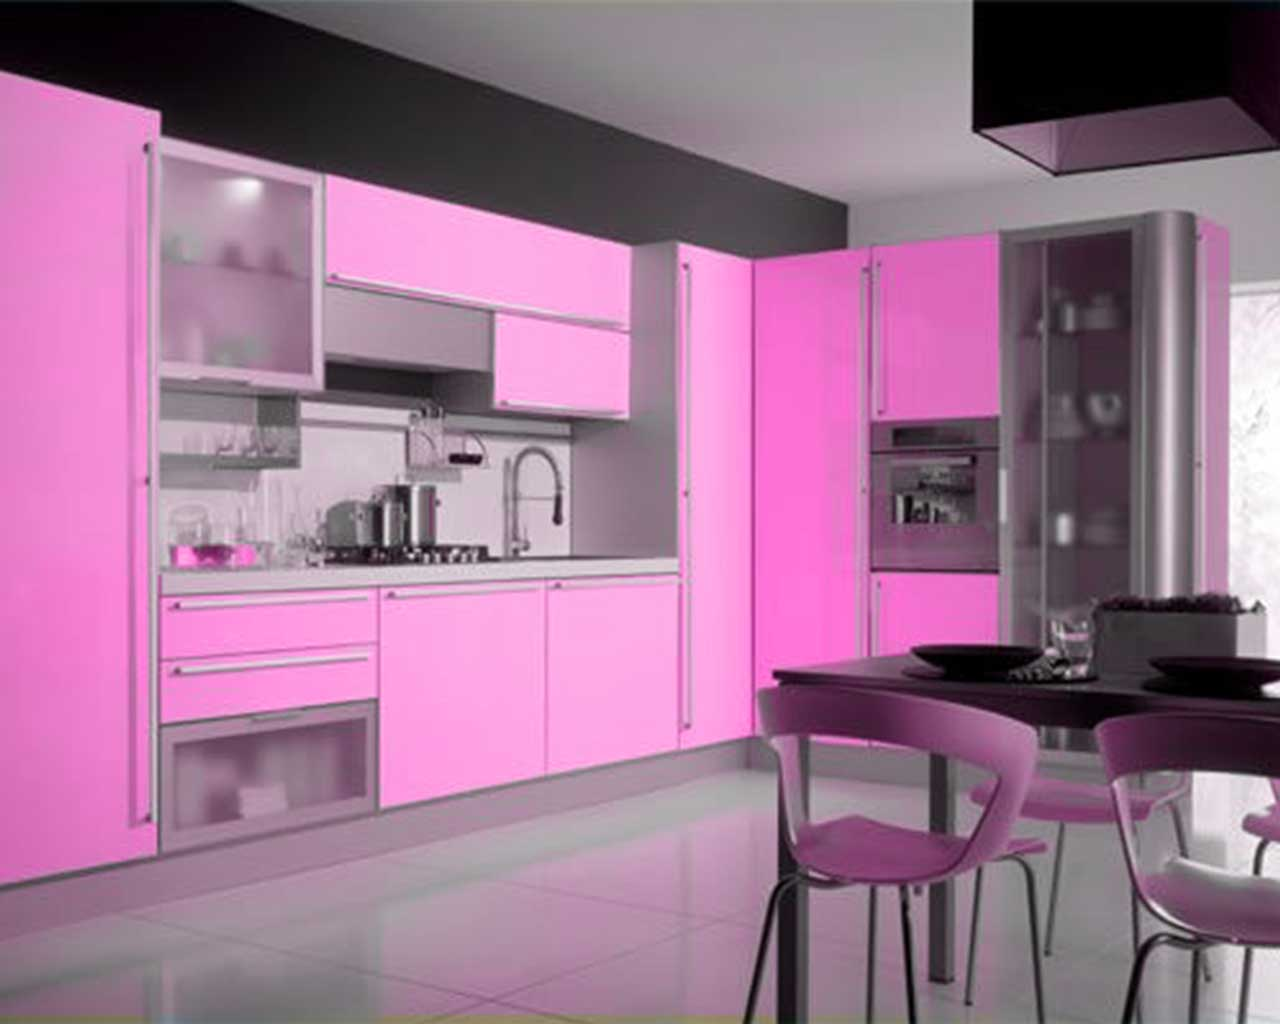 Pink And Black Kitchen Decor Pink Kitchen Decorating Ideas In Elegant Style